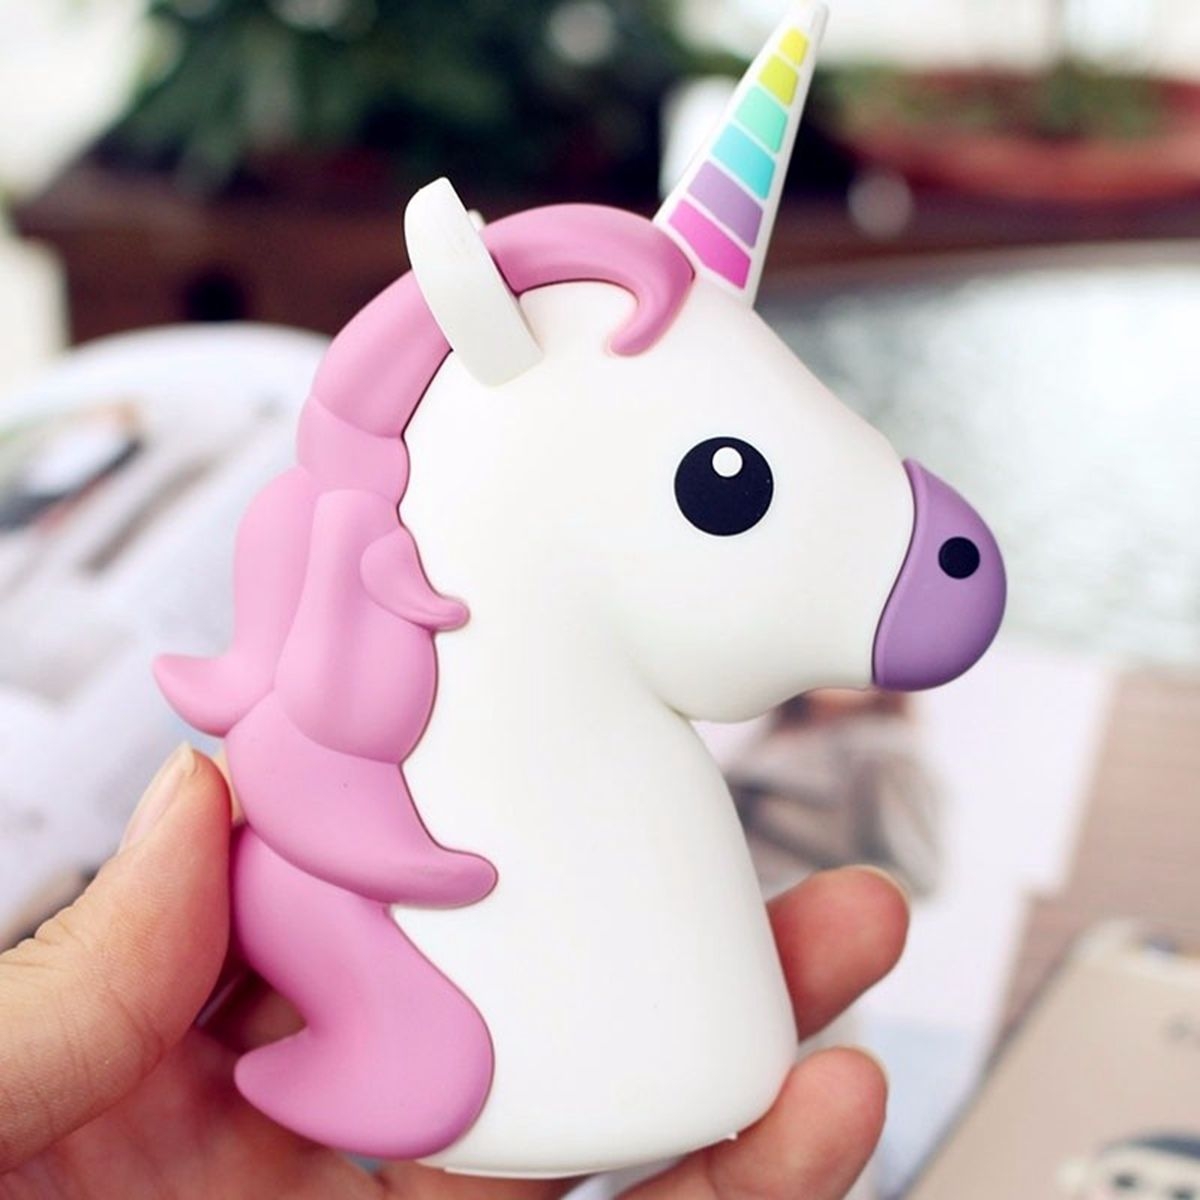 Unicorn Shaped Portable Backup Battery 2600mAh Power Bank for Xiaomi 6 Samsung S8 iPhone 7 Plus